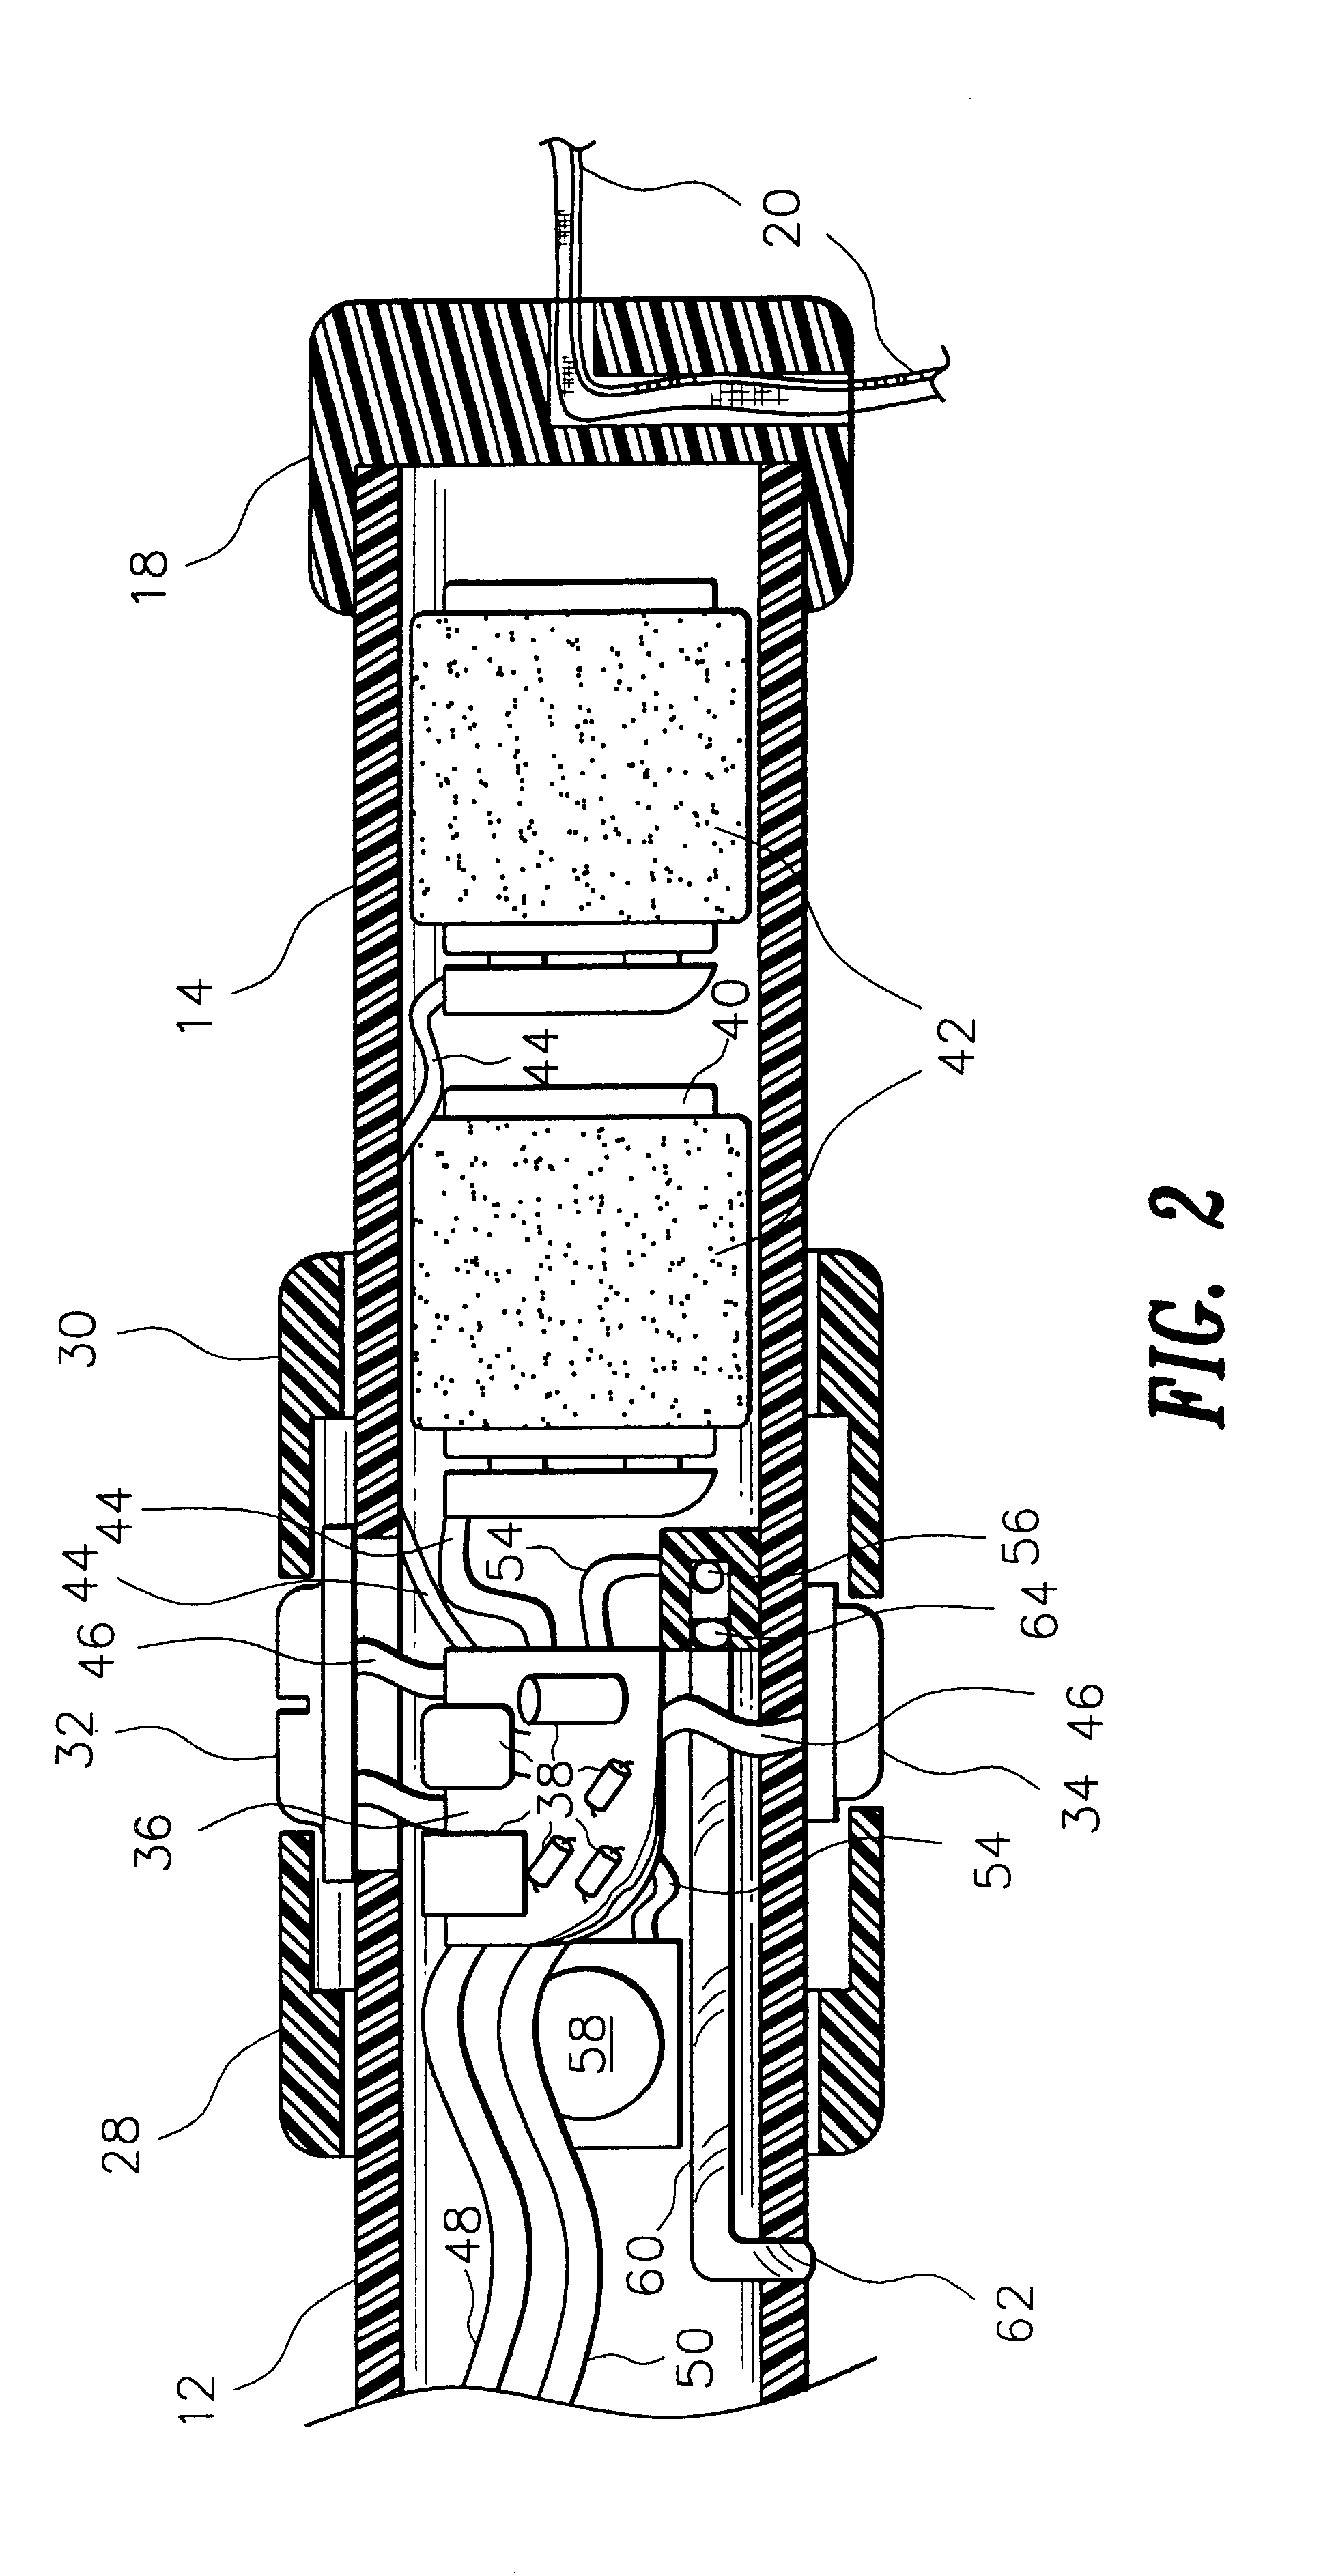 patent us6643114 - personal defense device